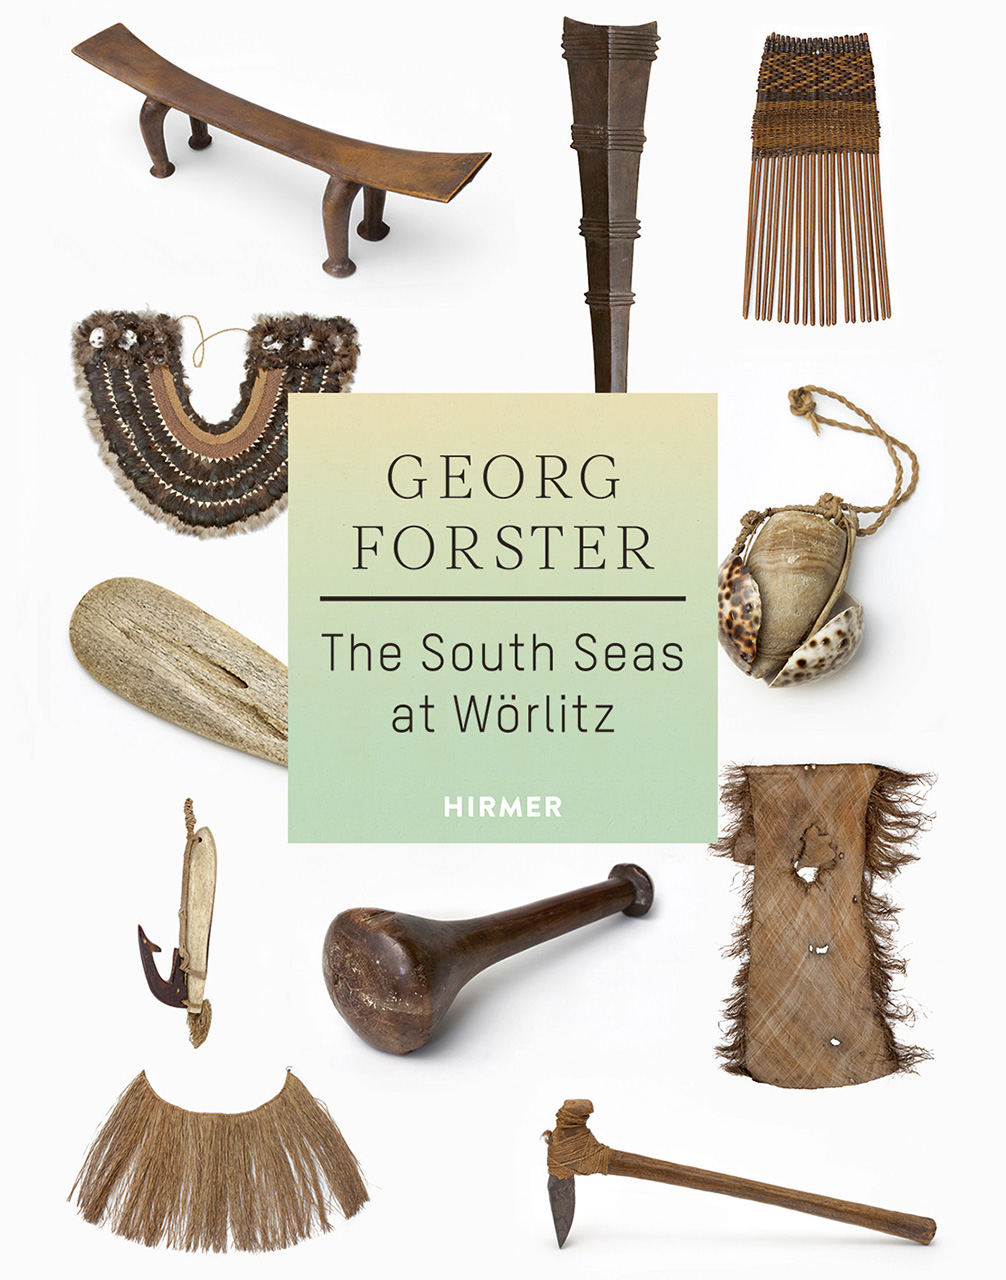 Georg Forster: The South Seas at Wörlitz